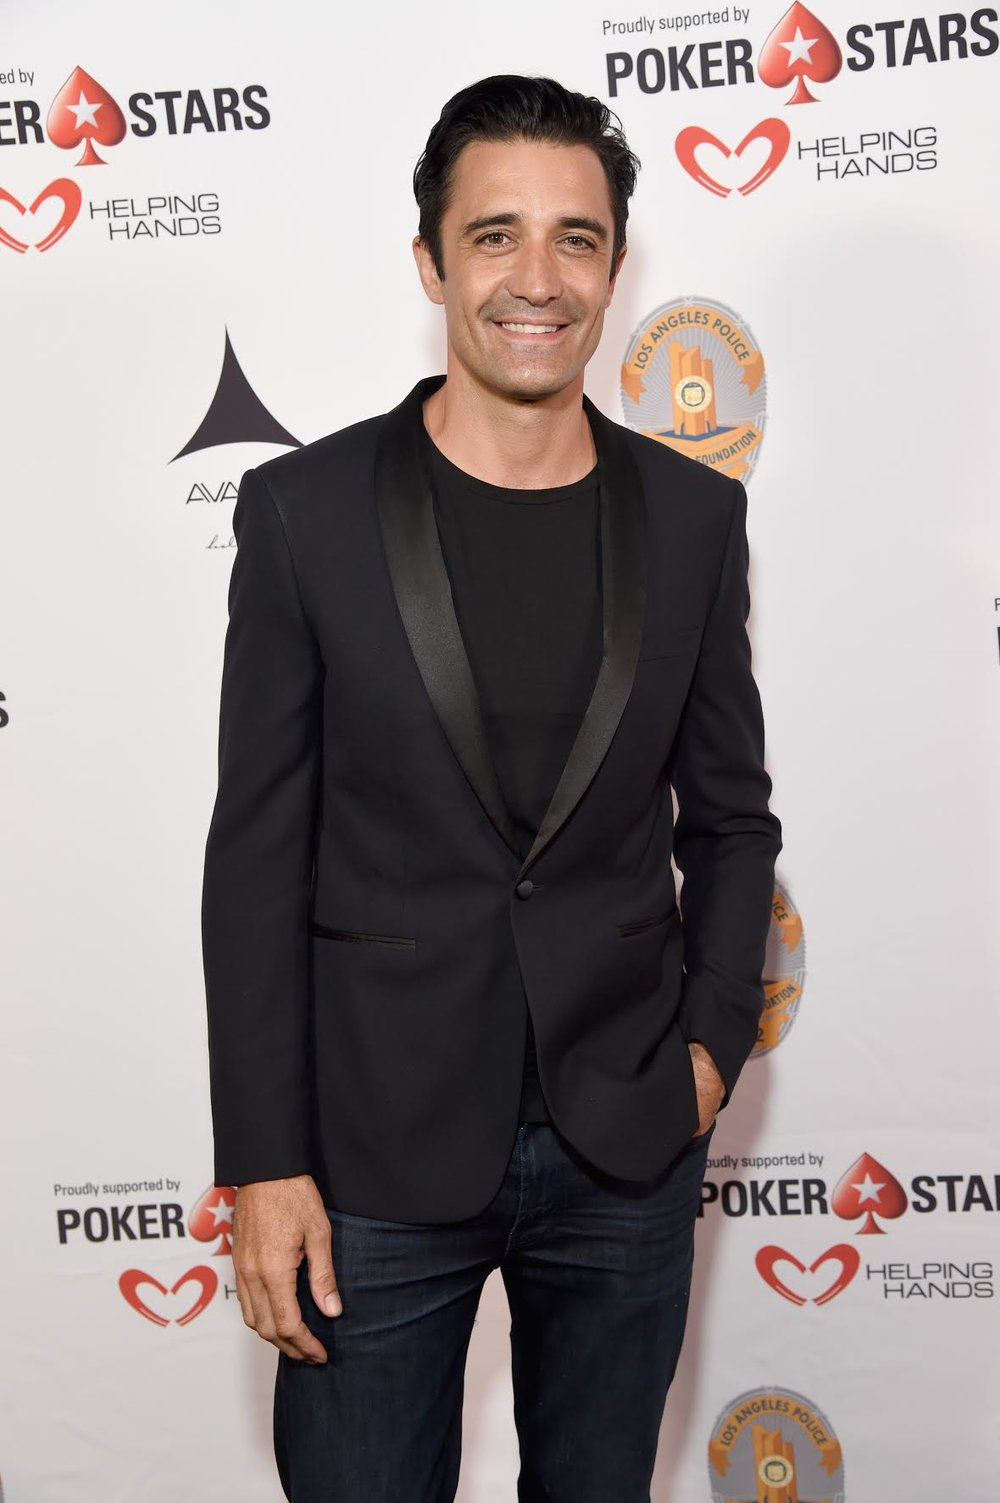 Gilles Marini looked dapper in black while attending the  Heroes for Heroes:   Los Angeles Police Memorial Foundation  Celebrity Poker Tournament & Casino Night Party, supported by    PokerStars Helping Hands  at the Avalon in Hollywood.  Photo Credit: Michael Kovac  / Getty Images